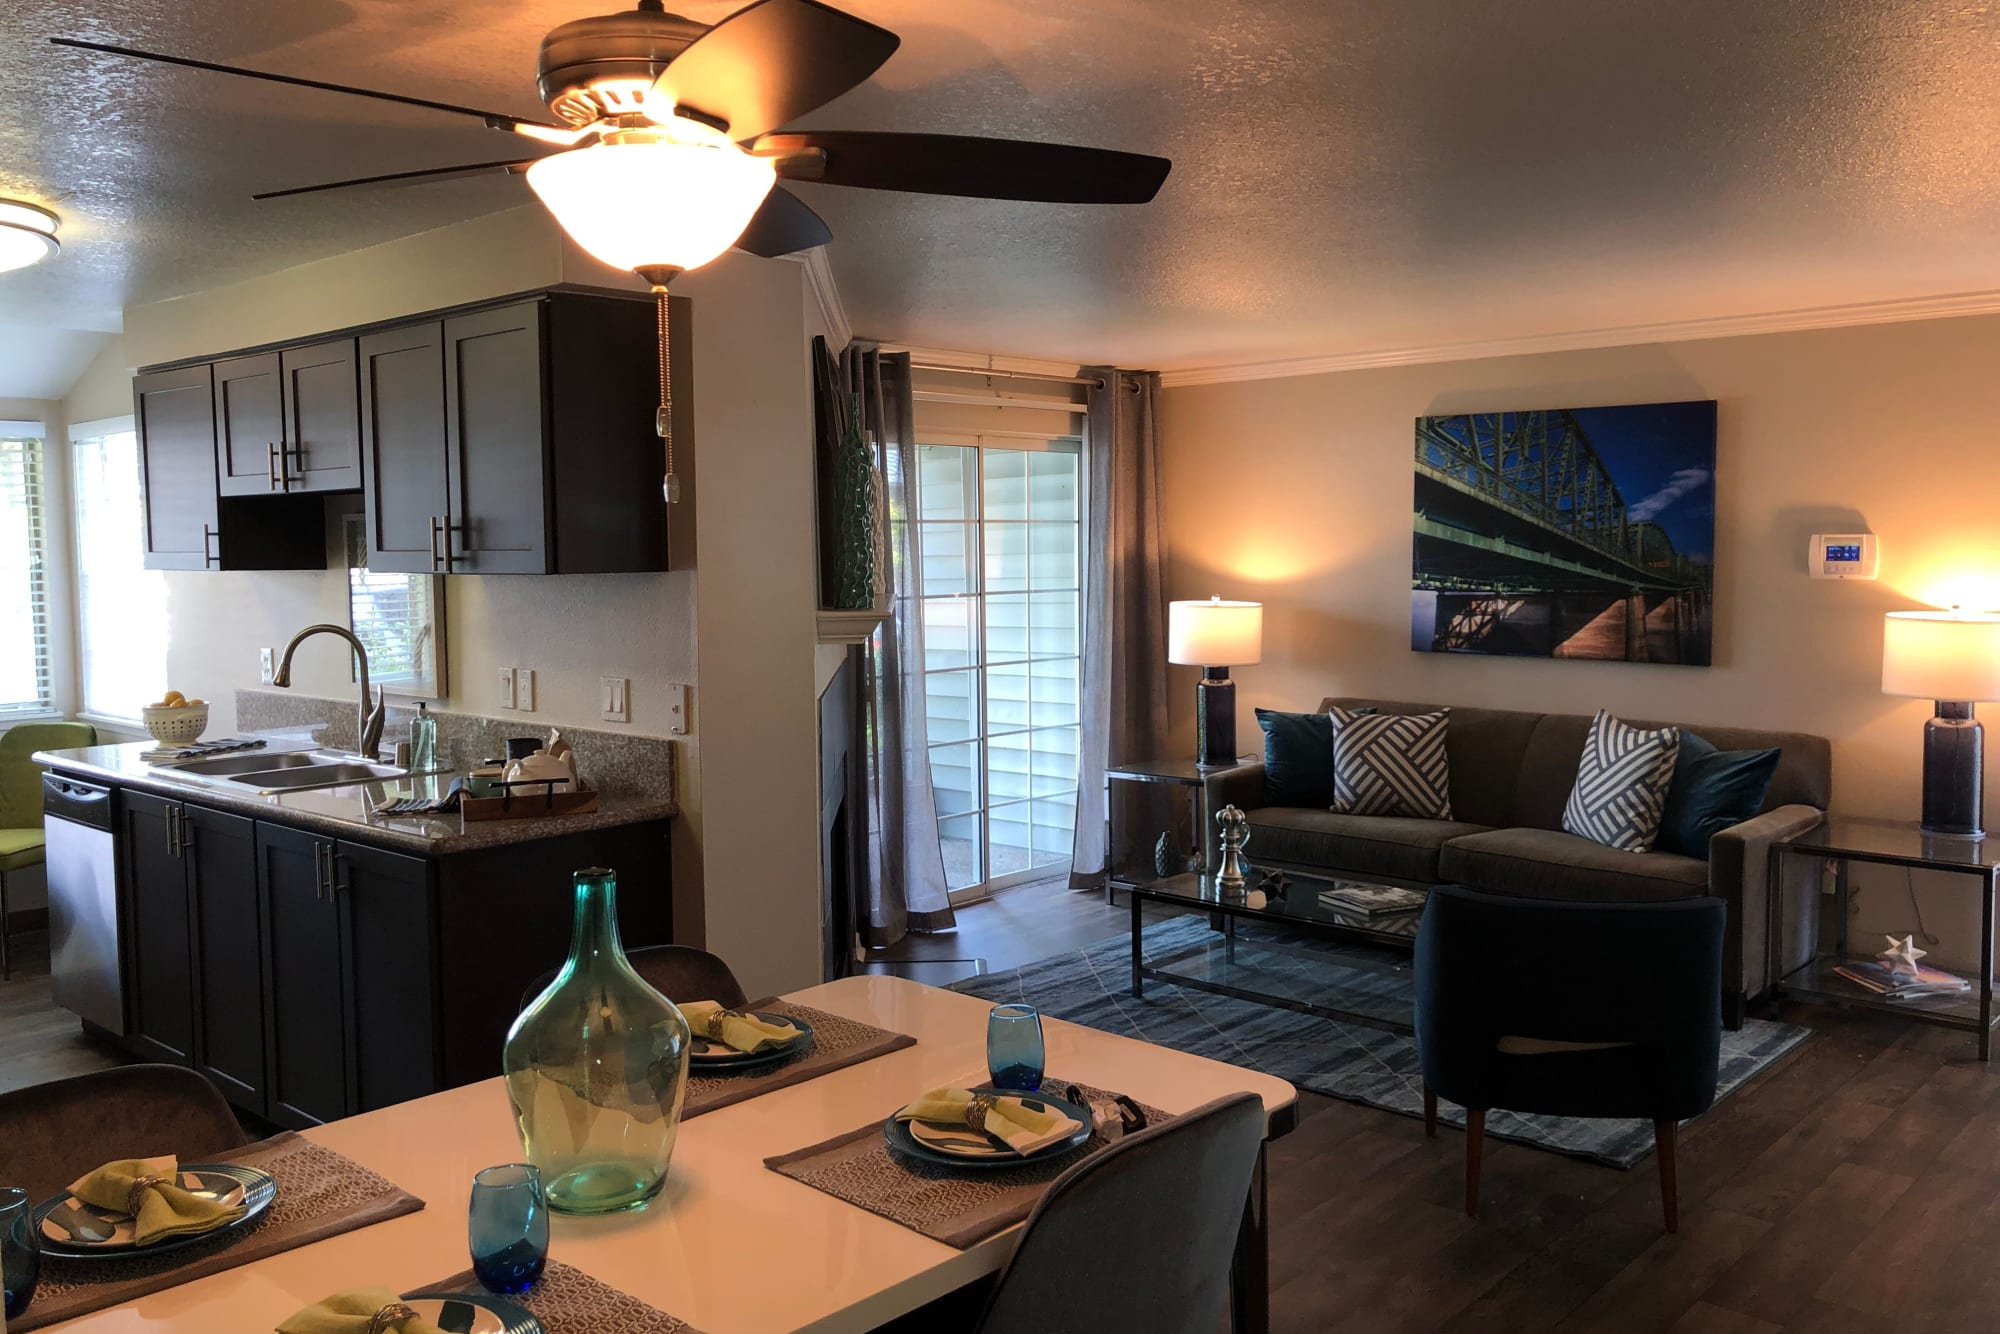 View of Dining Room, living room, and dining room fully furnished at Walnut Grove Landing Apartments in Vancouver, WA